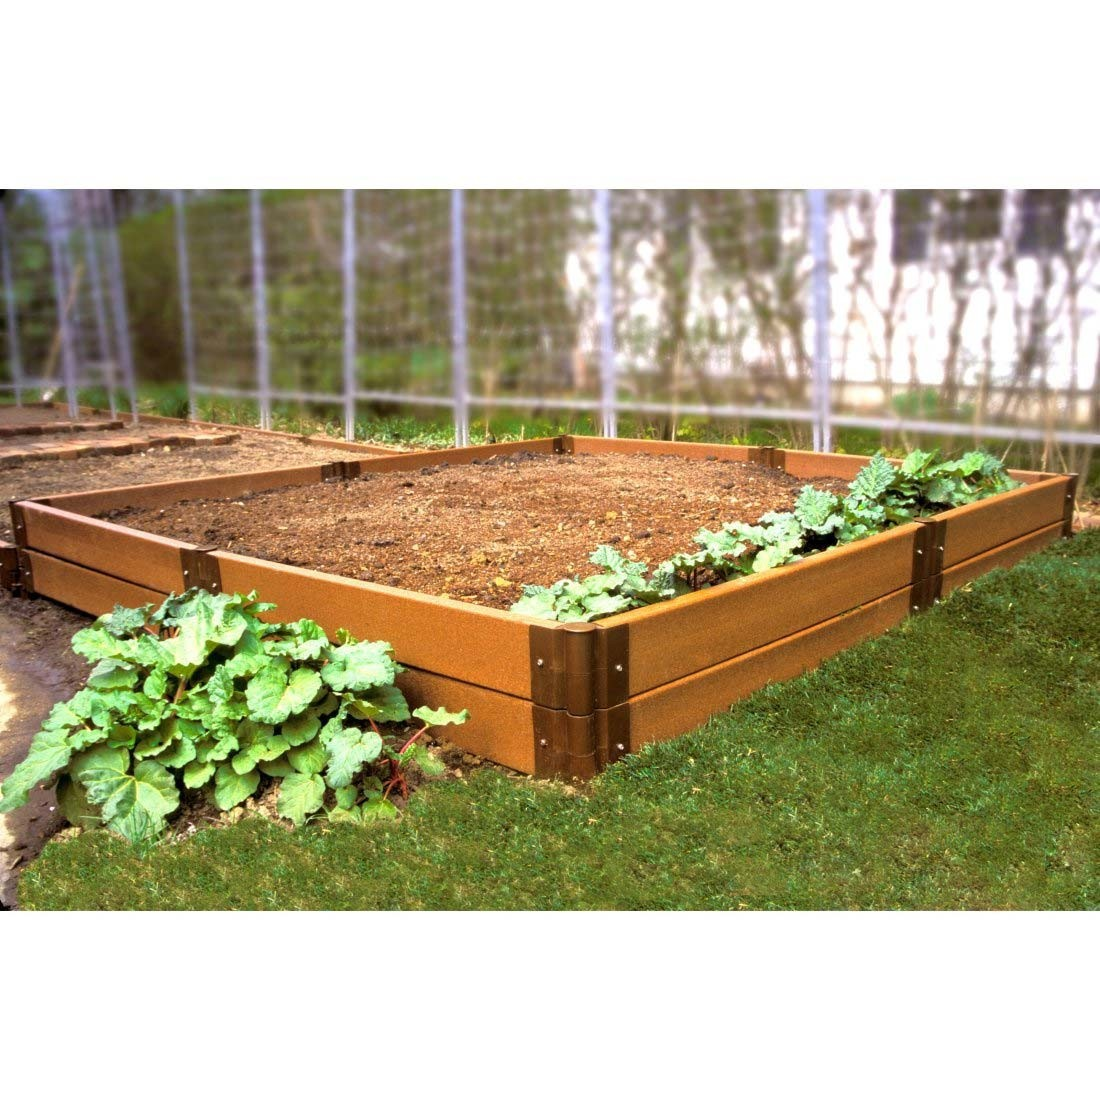 12 x 12 vegetable garden design for Garden design kits